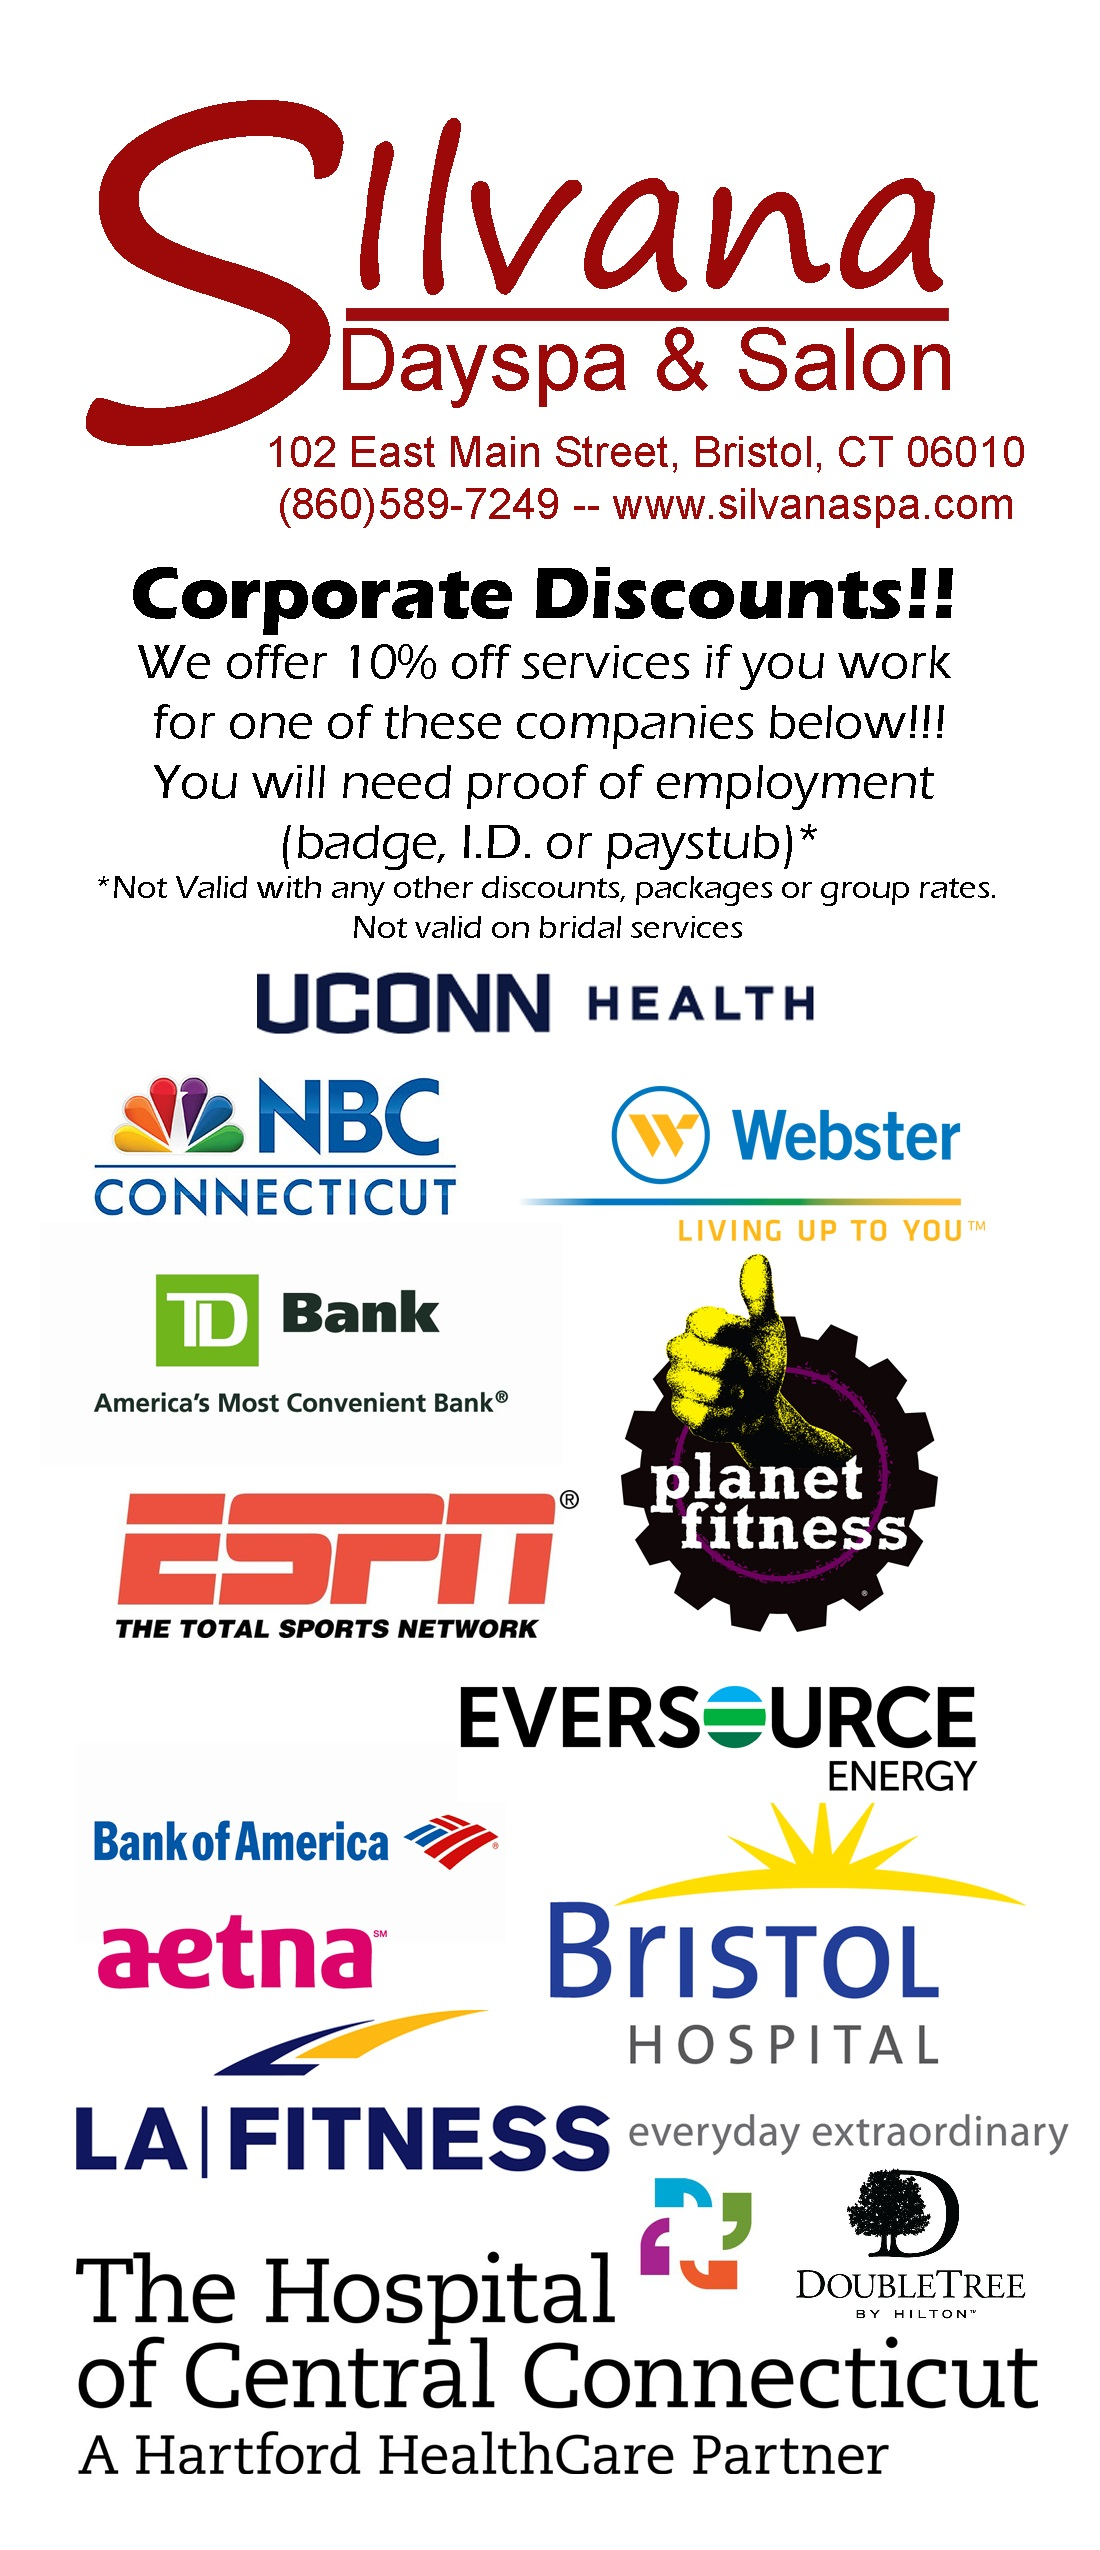 uconn, nbc, webster bank, td bank, planet fitness, espn, eversource, bank of america, aetna, bristol hospital, la fitness, the hospital of central connecticut, double tree, spa discount, spa, discount, corporate discount, salon, bristol, bristol CT,